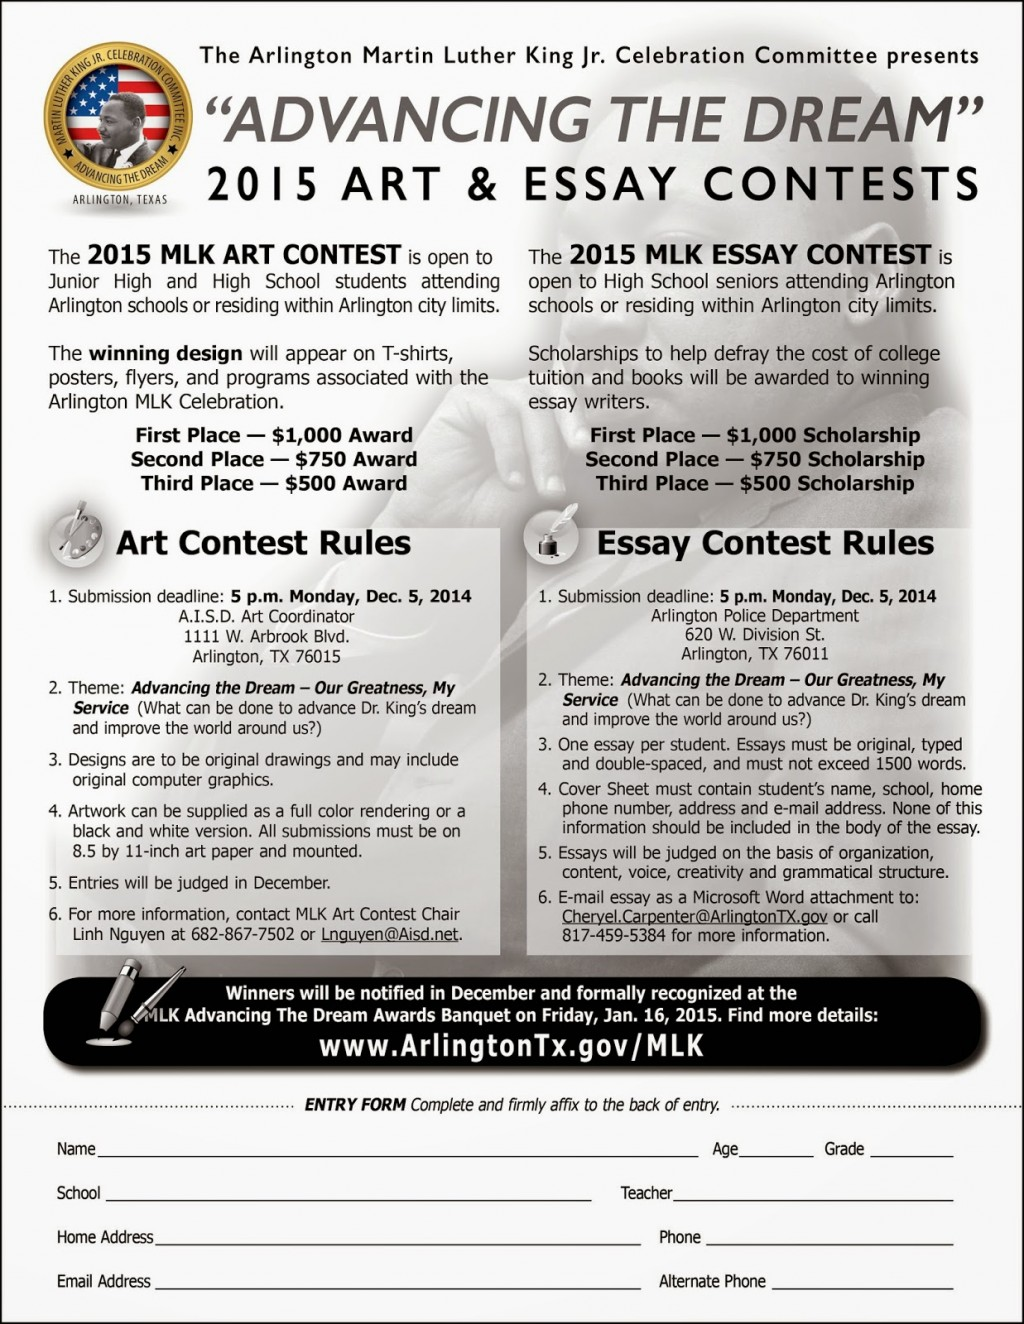 011 Essay Example Art2band2bessay2bcontest2bflyer2b2015 Best Mlk Ideas Intro Contest Winners 2018 Large